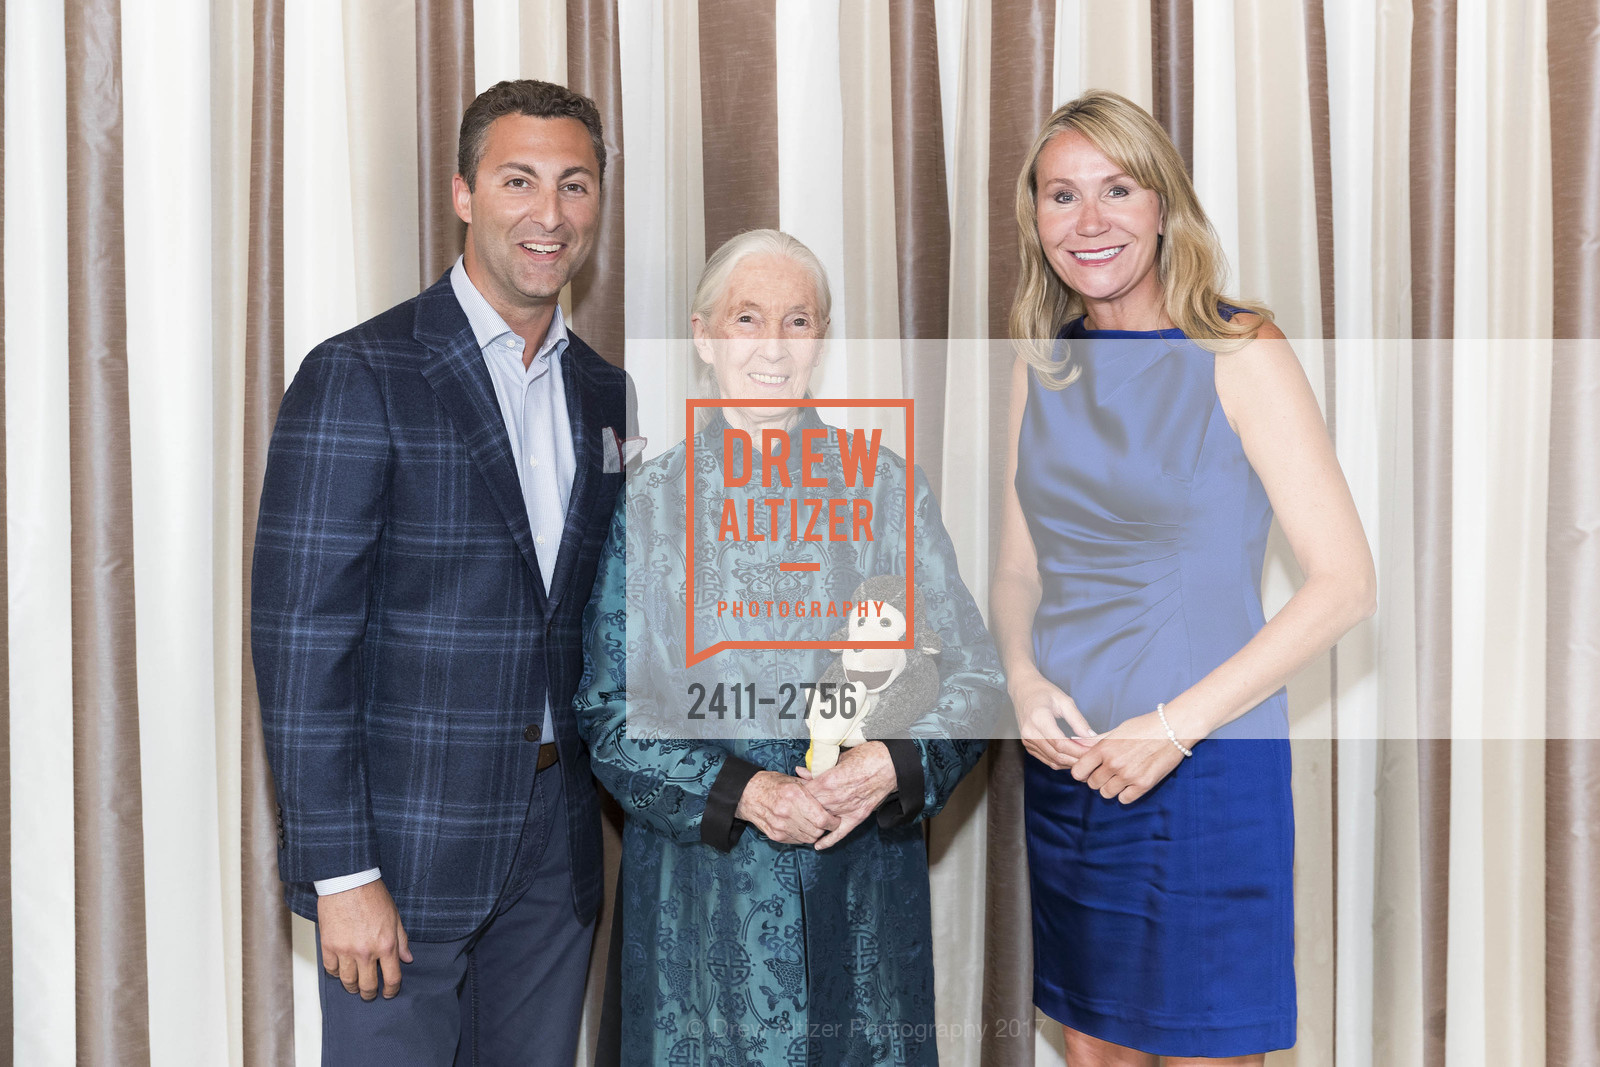 Peter Morea, Jane Goodall, Mary Schwager, Photo #2411-2756